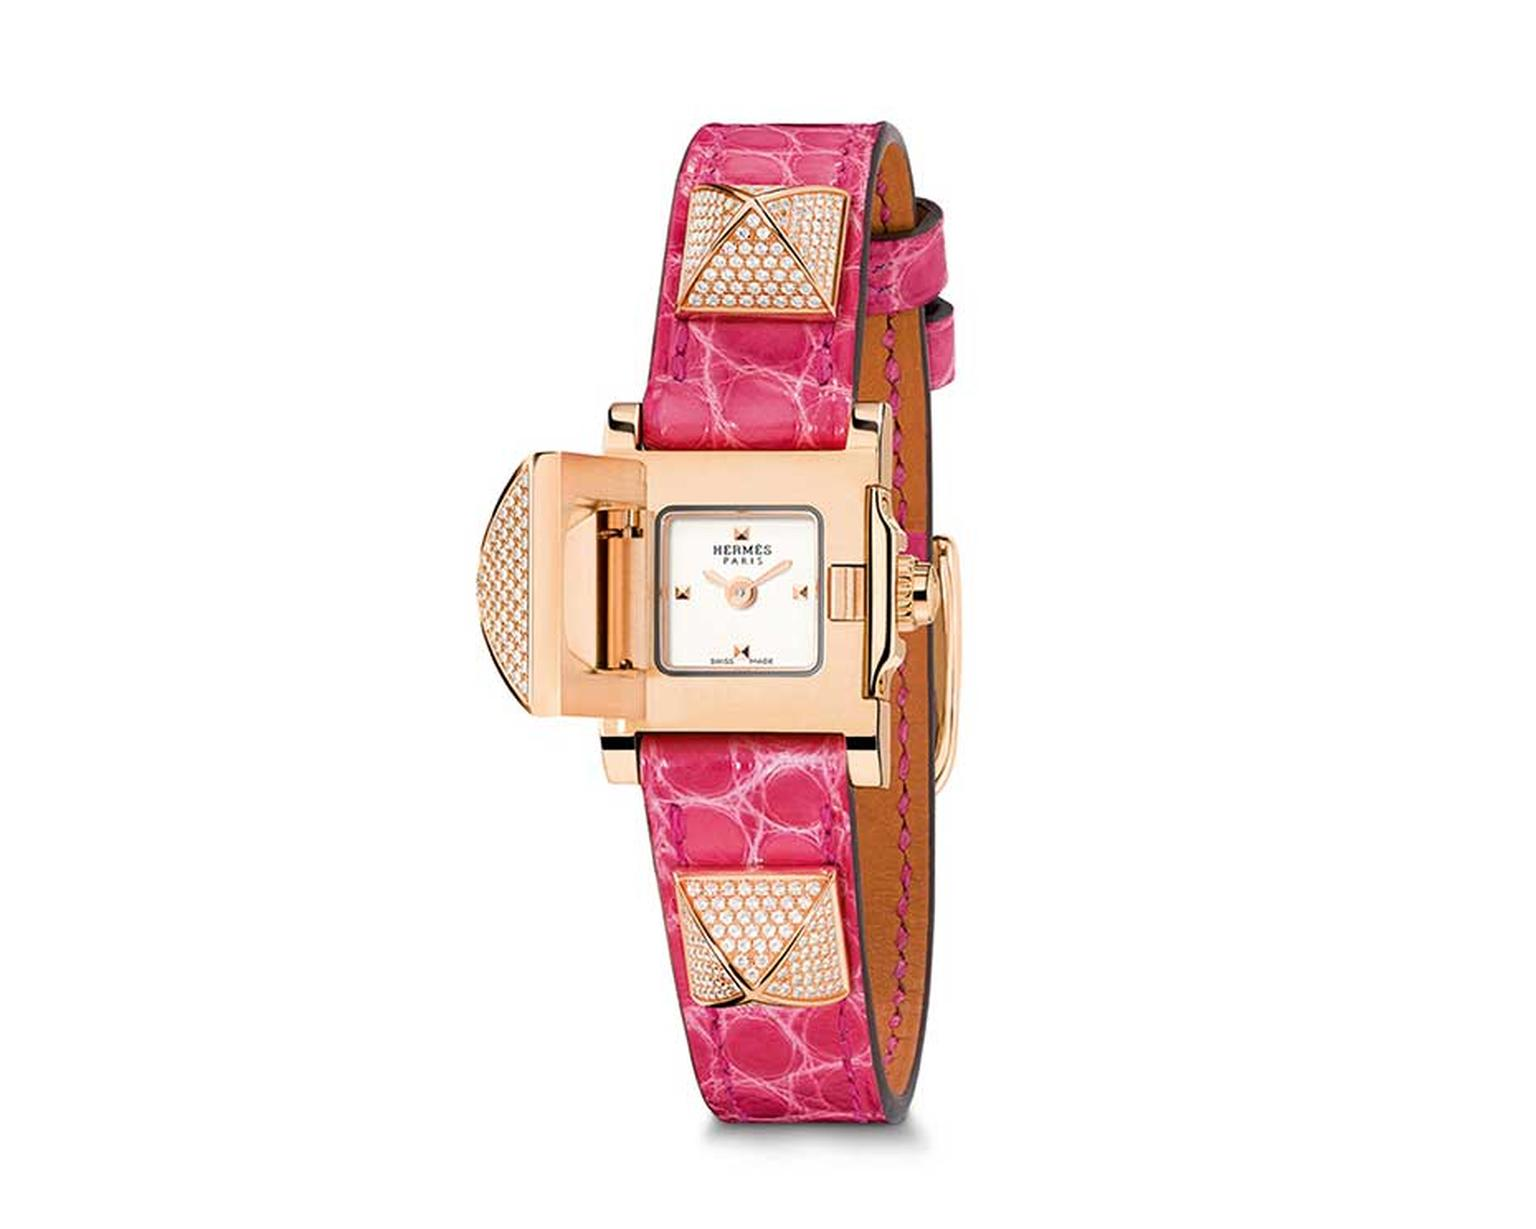 dog the online prestige handsome year raise u sg these watches woof l urushi chopard xp with c of luxury